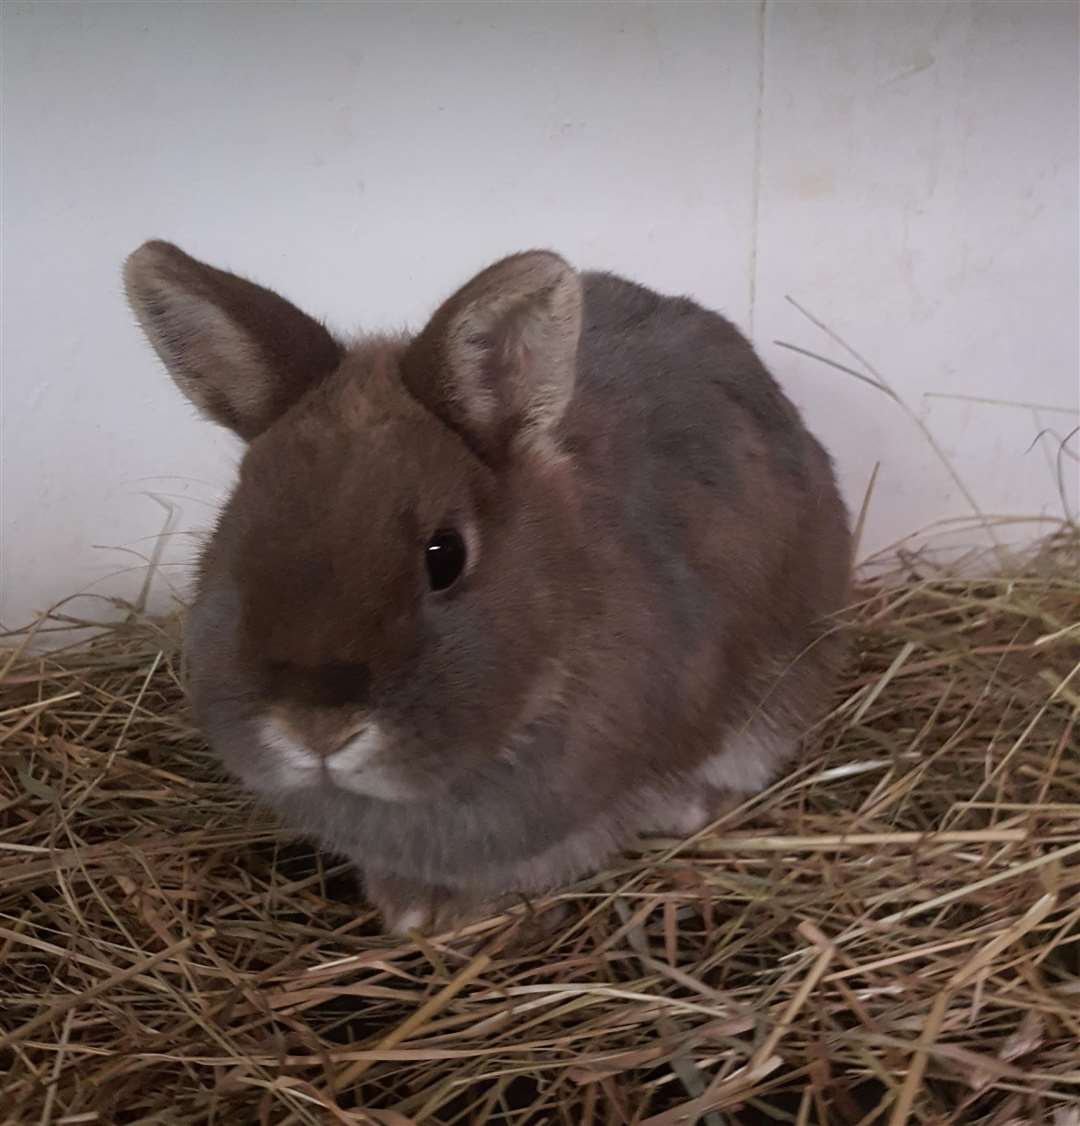 Three rabbits were found dumped outside a flat in Wisbech. (31630289)